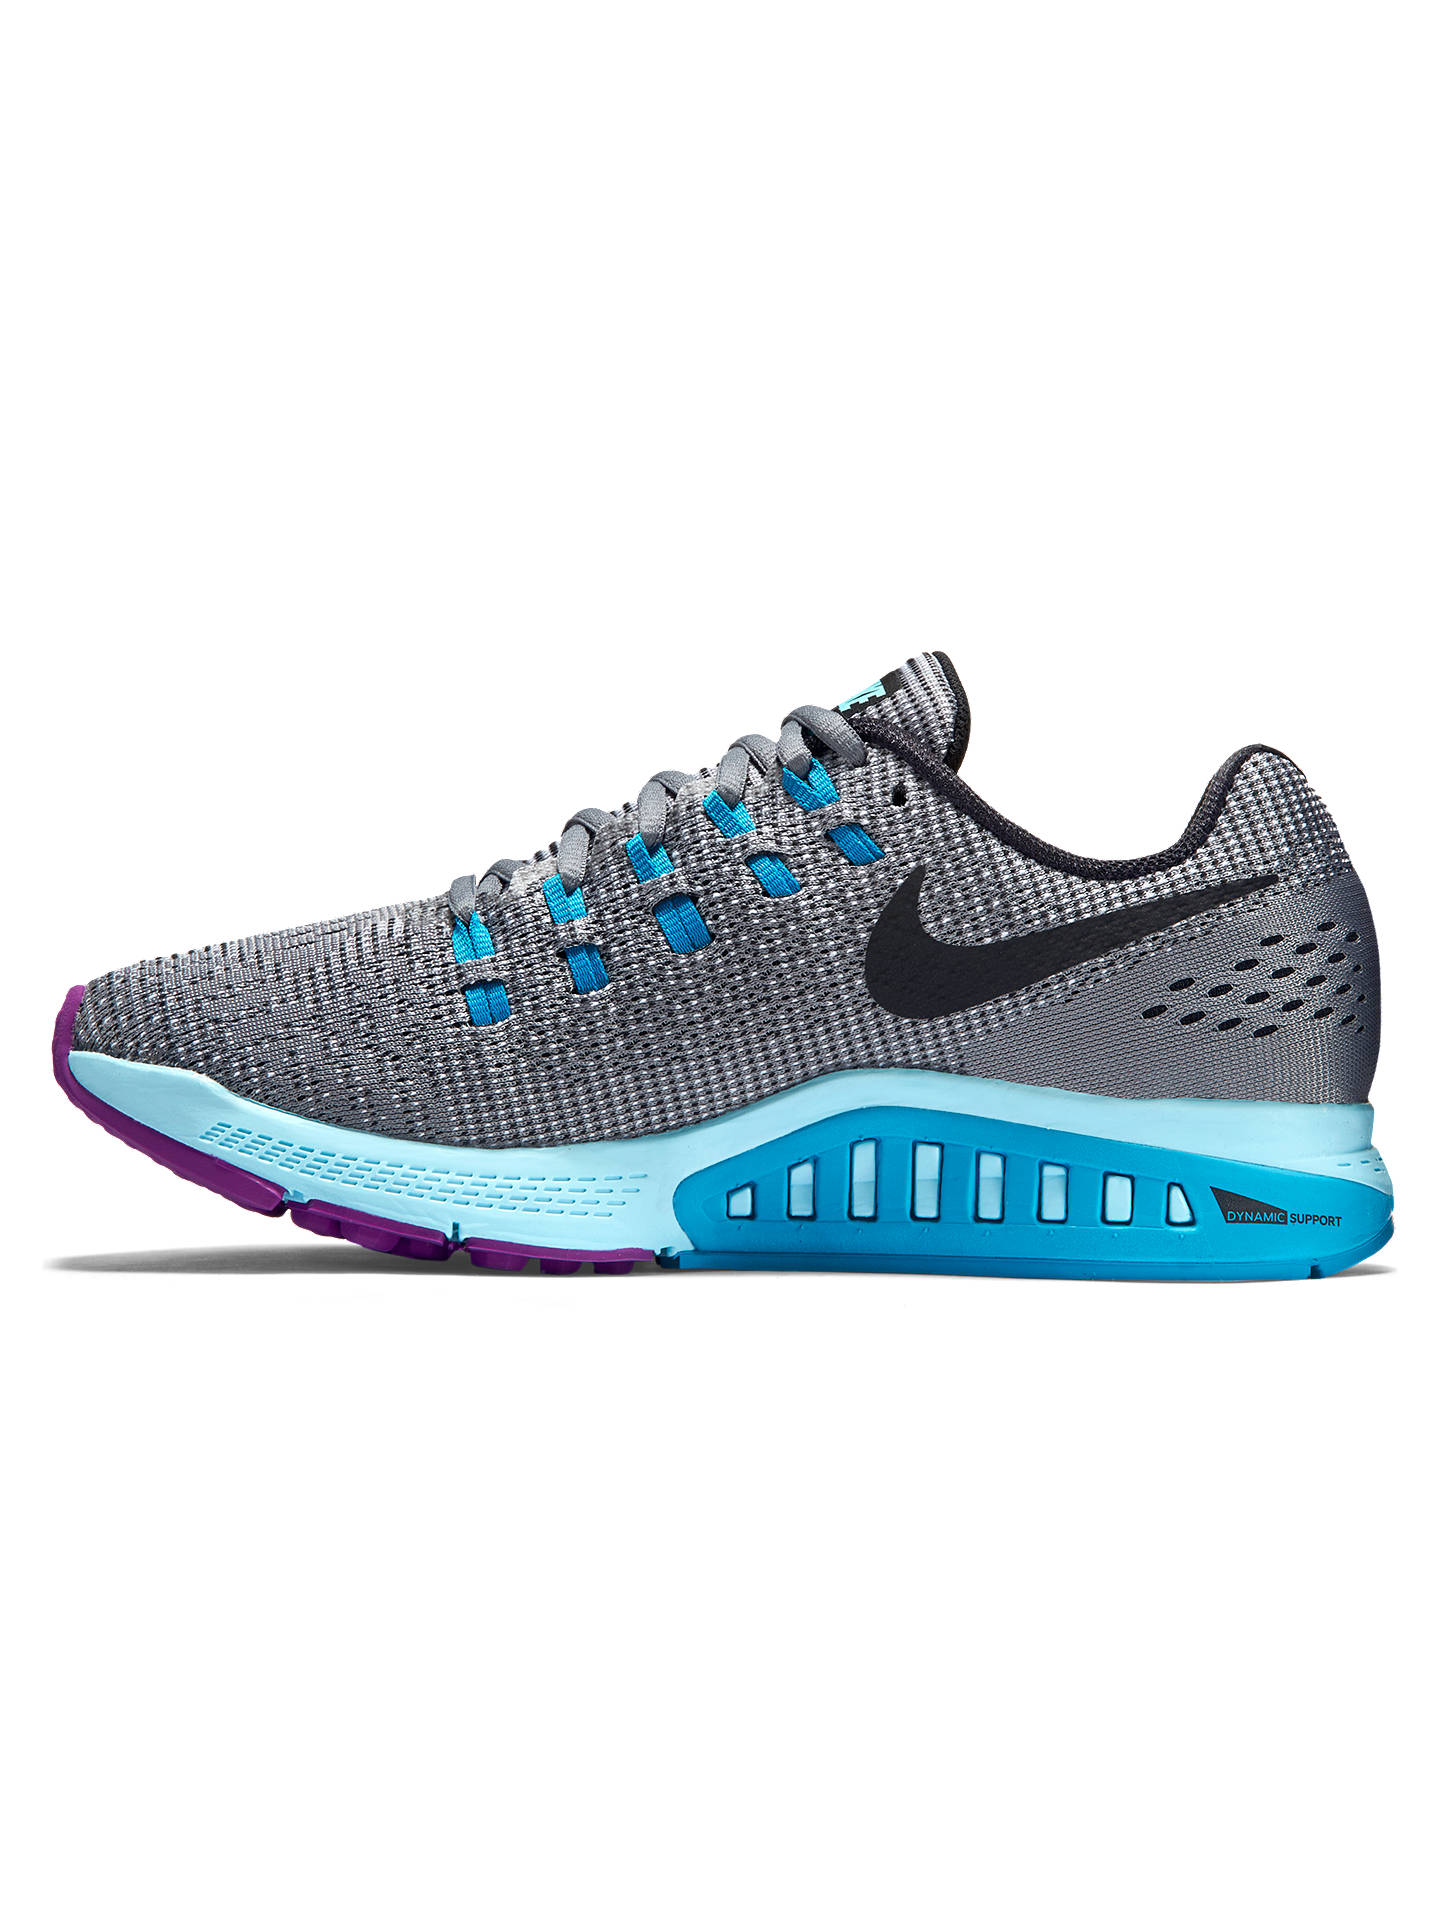 super popular e1593 44ead ... Buy Nike Air Zoom Structure 19 Women s Running Shoes, Grey Multi, 4  Online ...